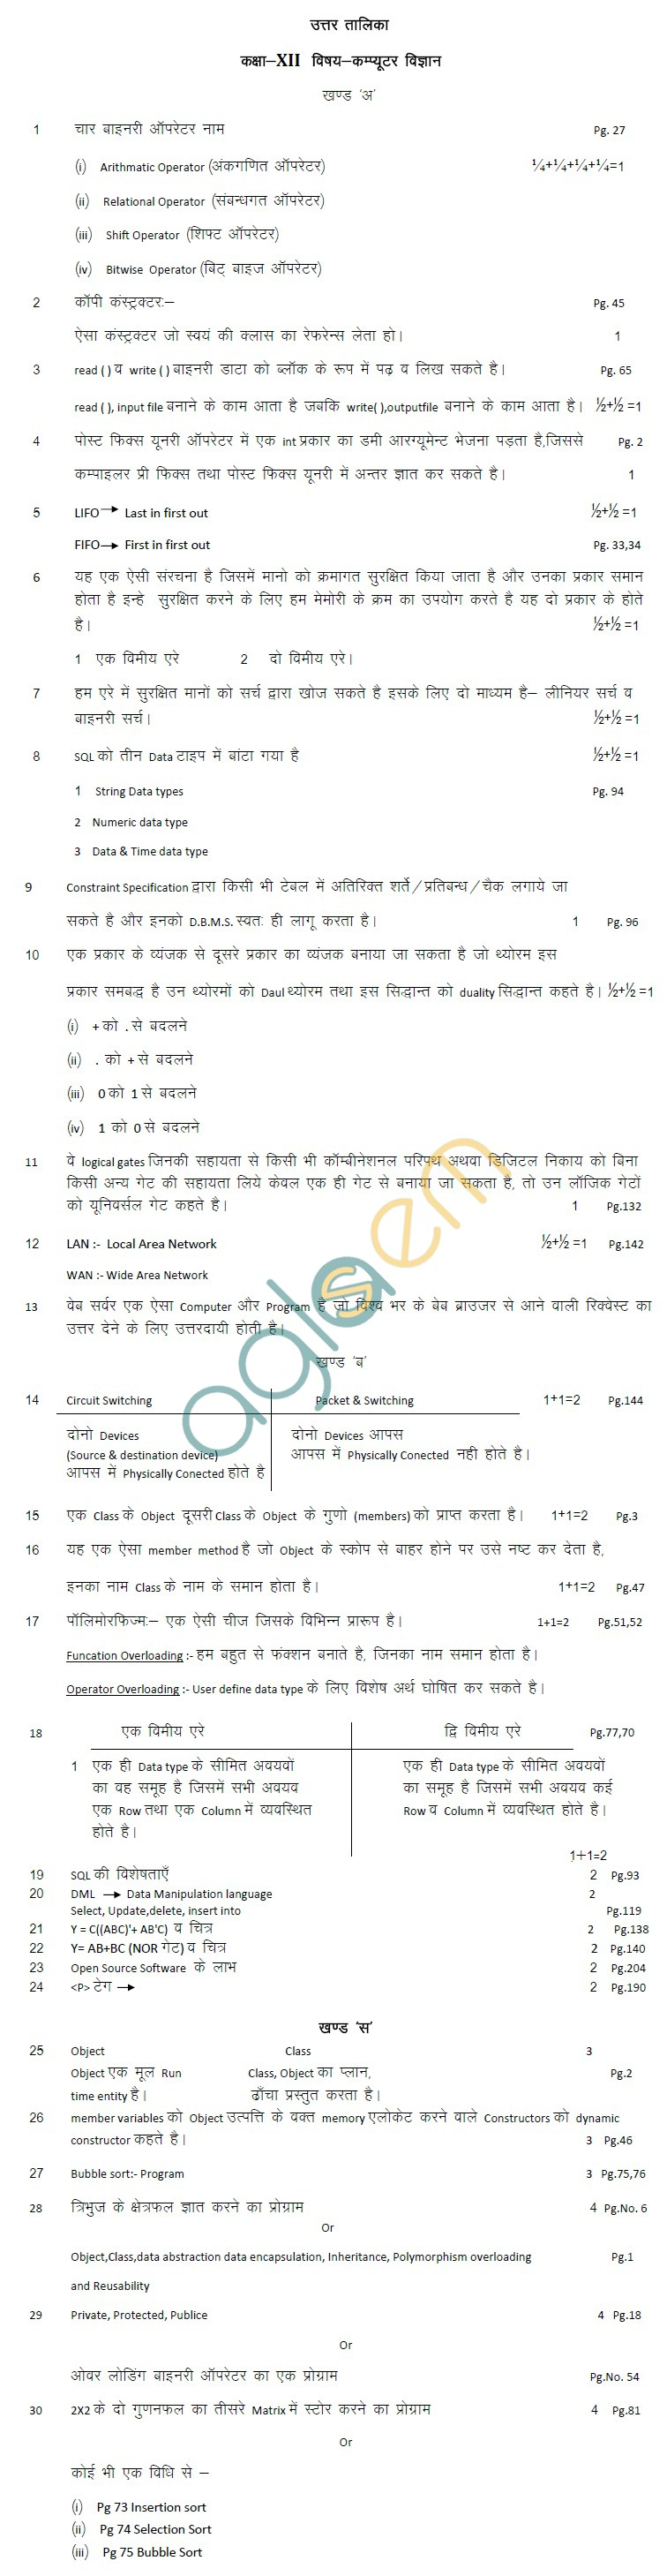 Rajasthan Board Class 12 Computer Science Model Question